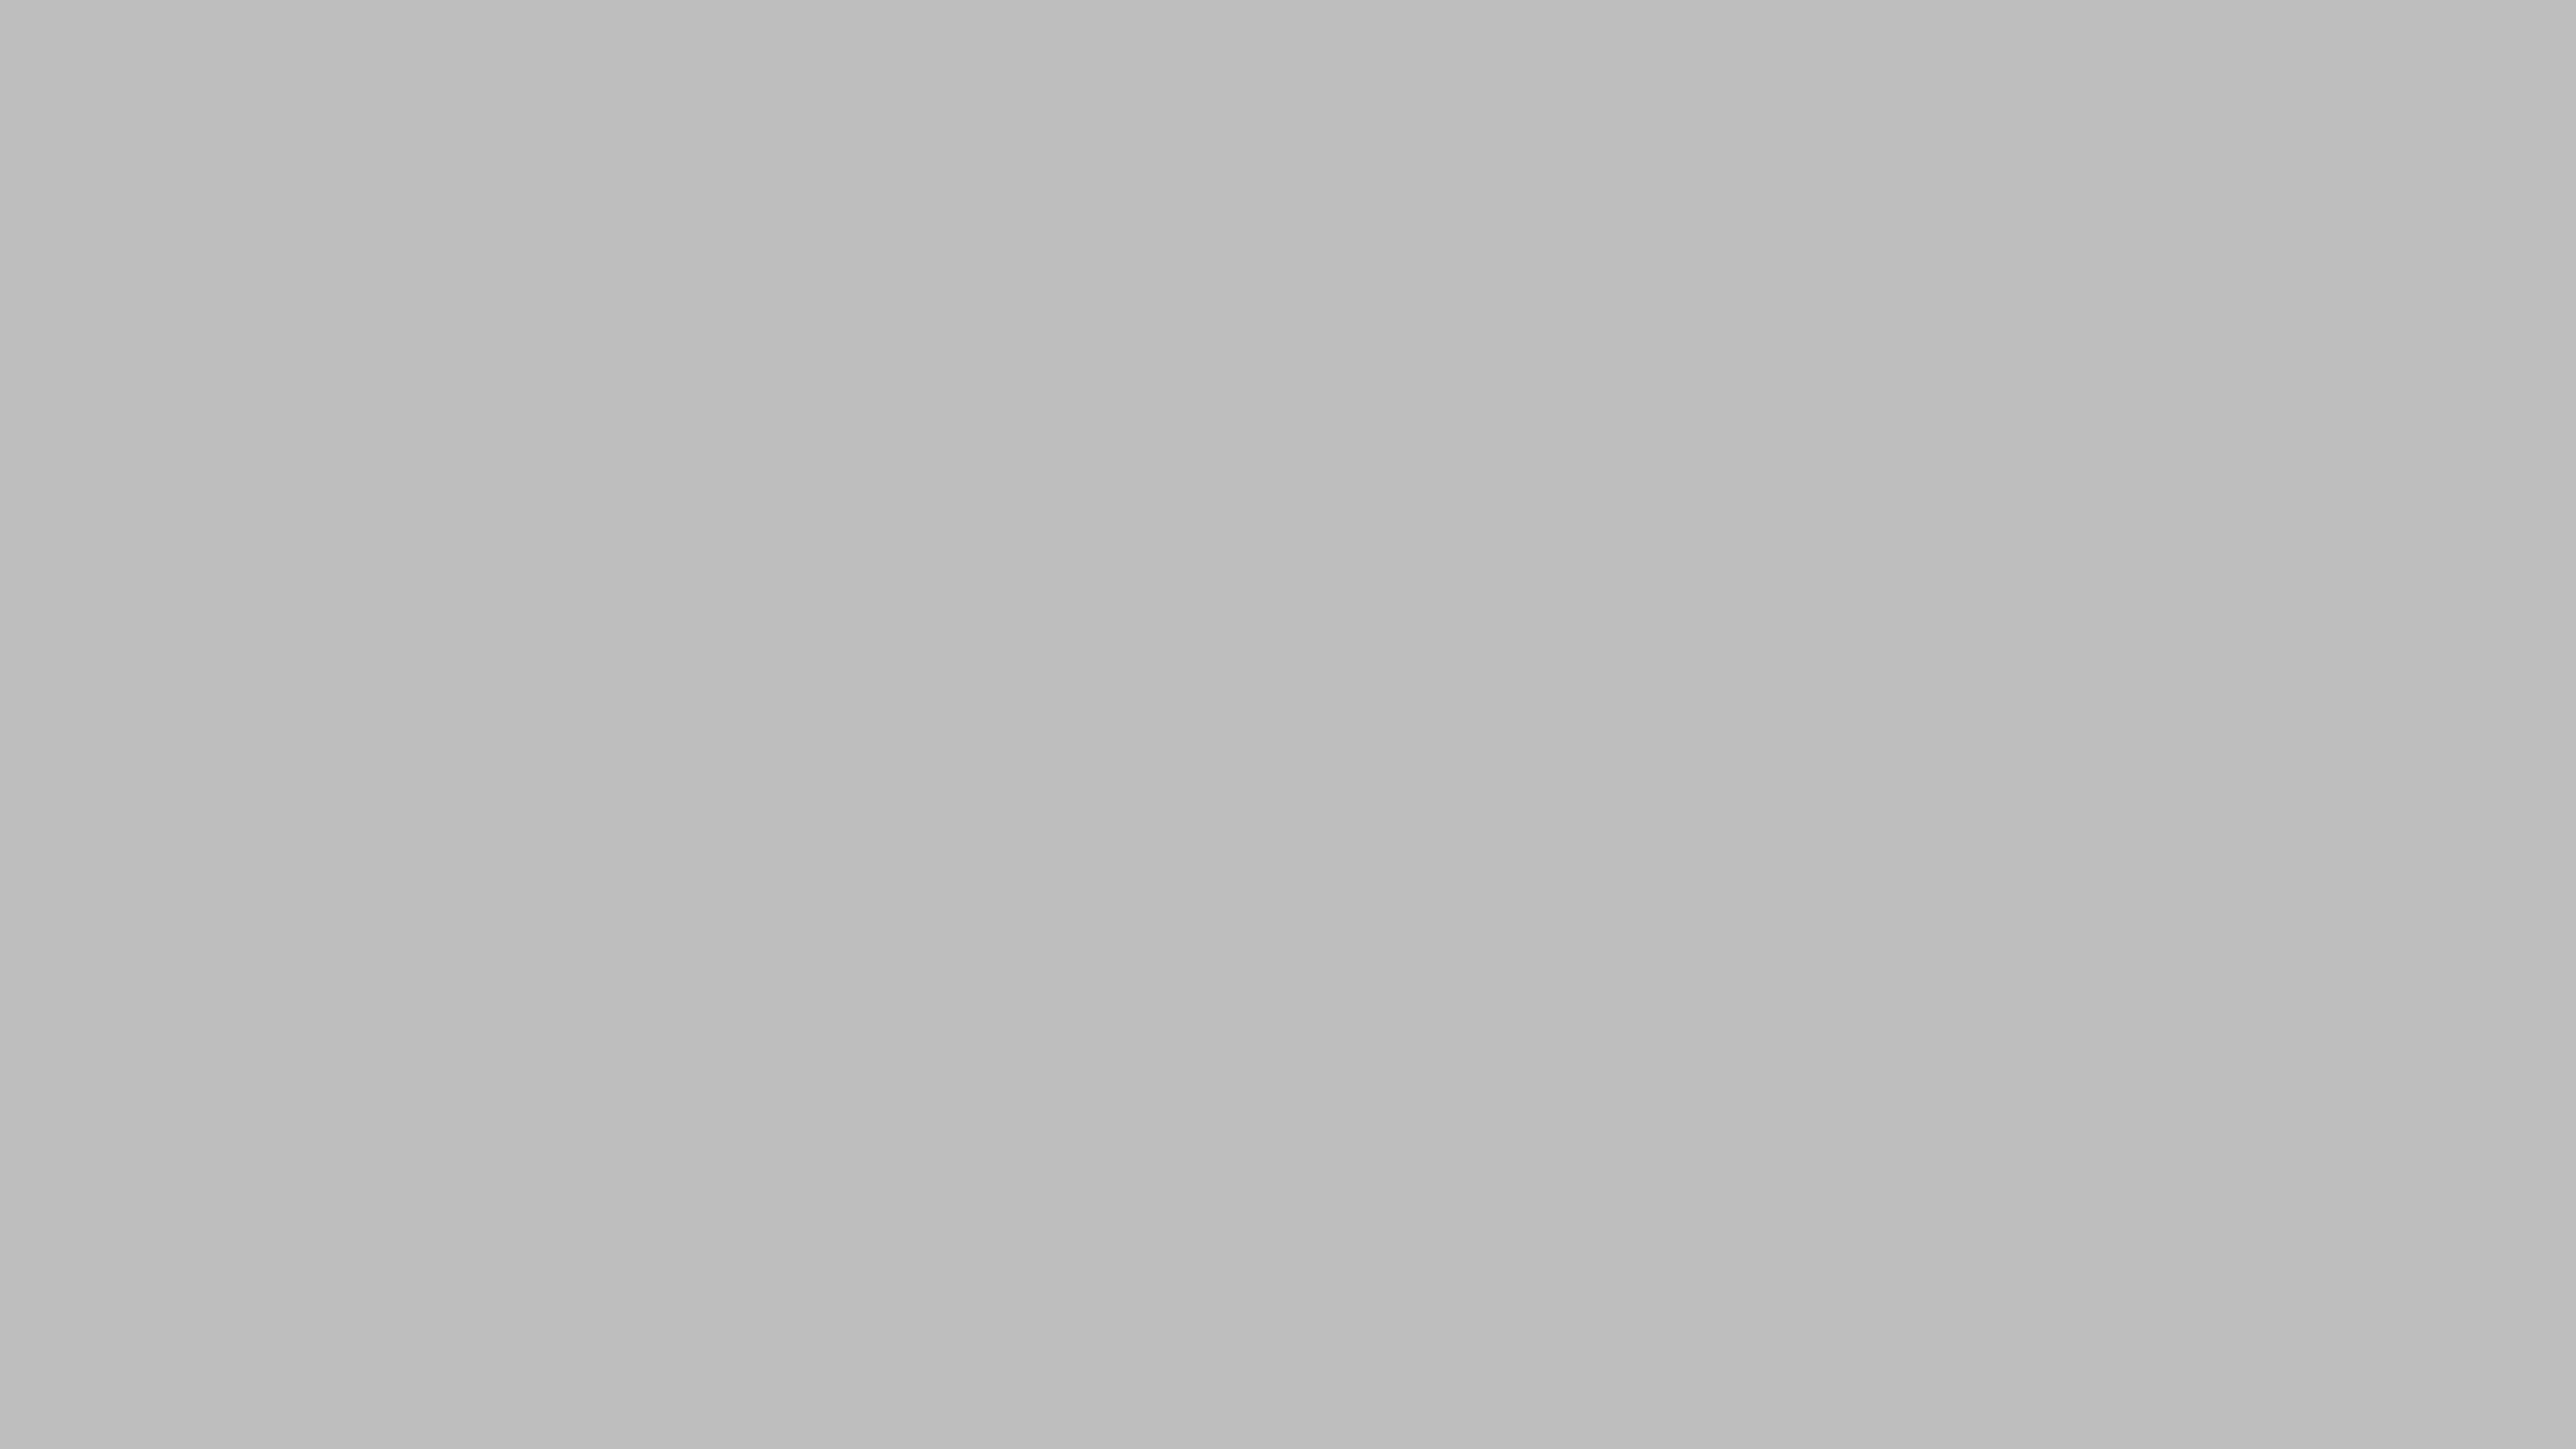 3840x2160 Gray X11 Gui Gray Solid Color Background